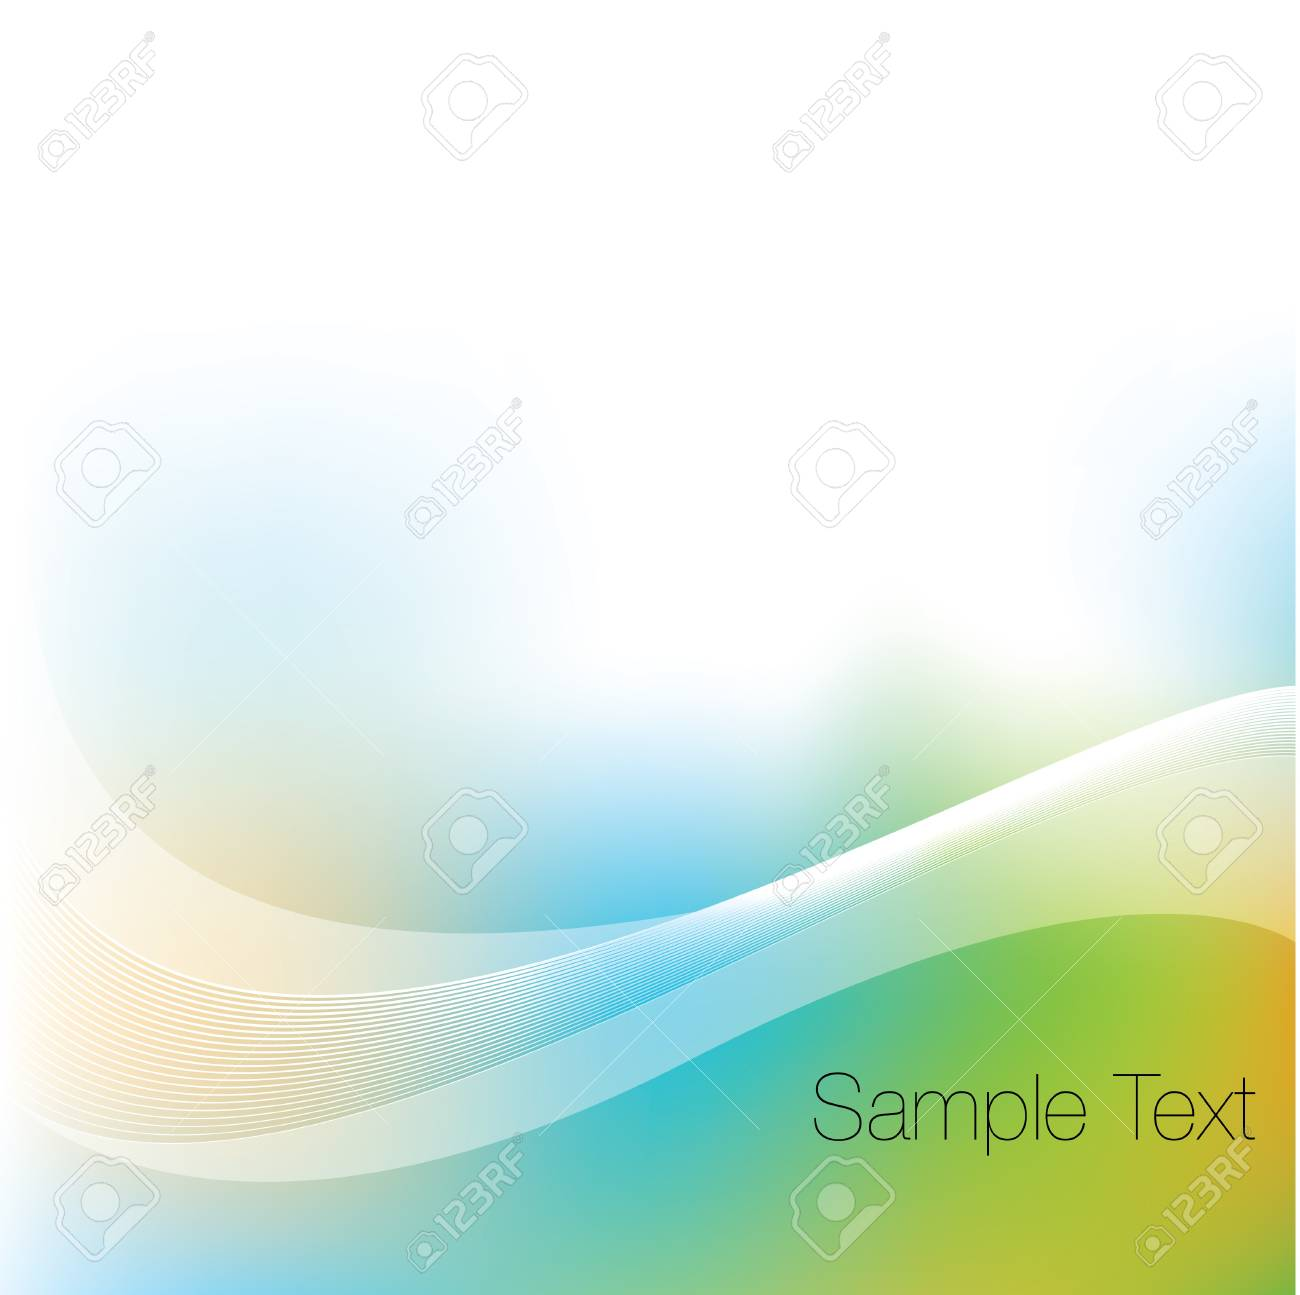 Abstract Background Design Stock Vector - 14576559